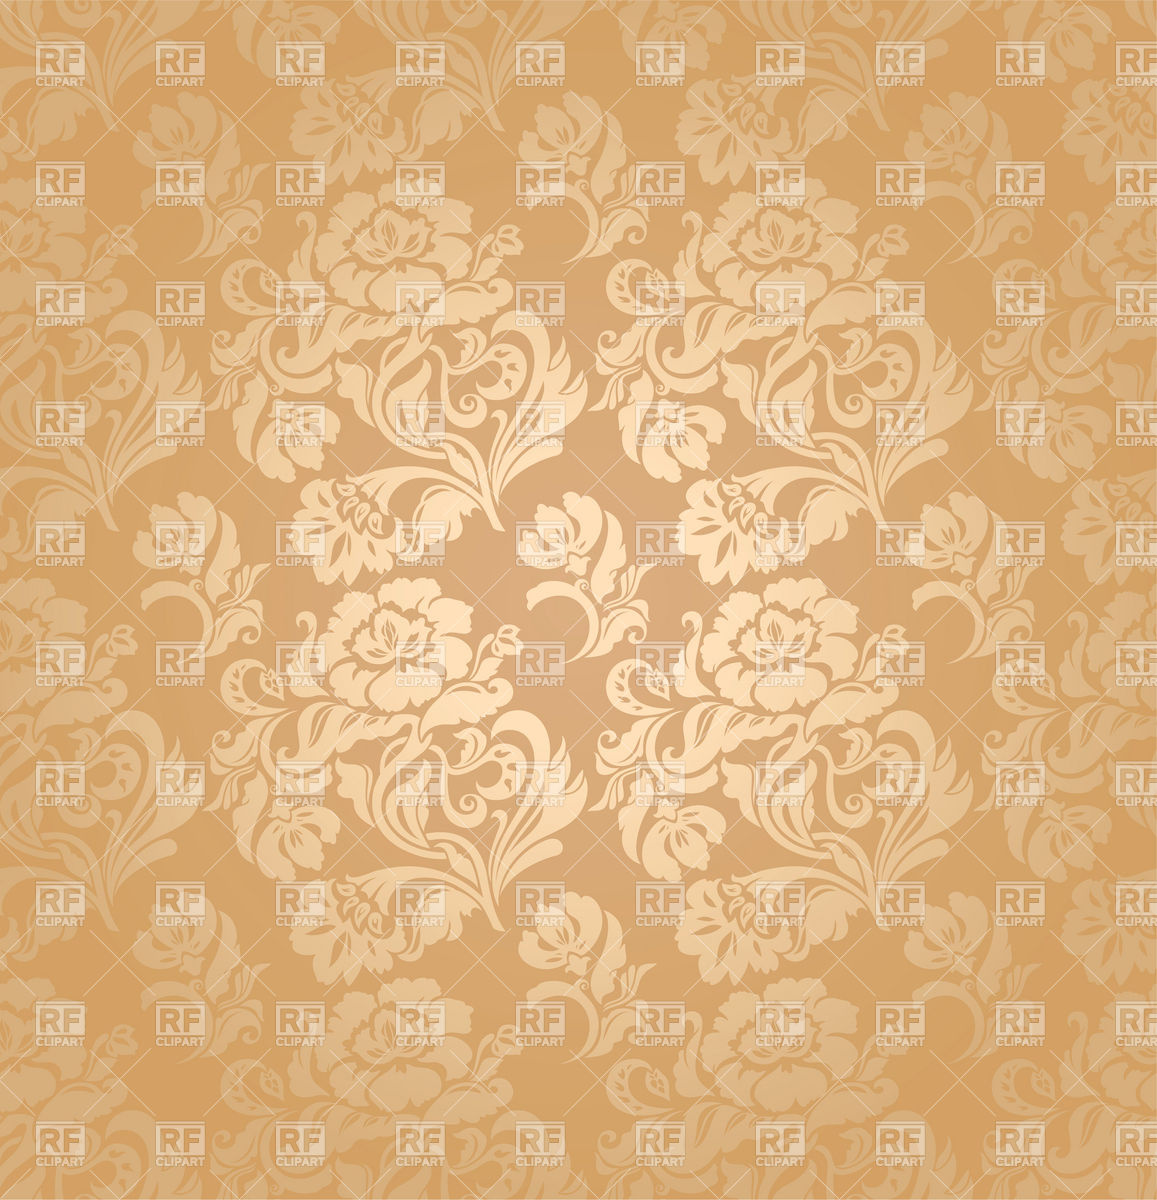 Beige victorian wallpaper with floral pattern download royalty free 1157x1200